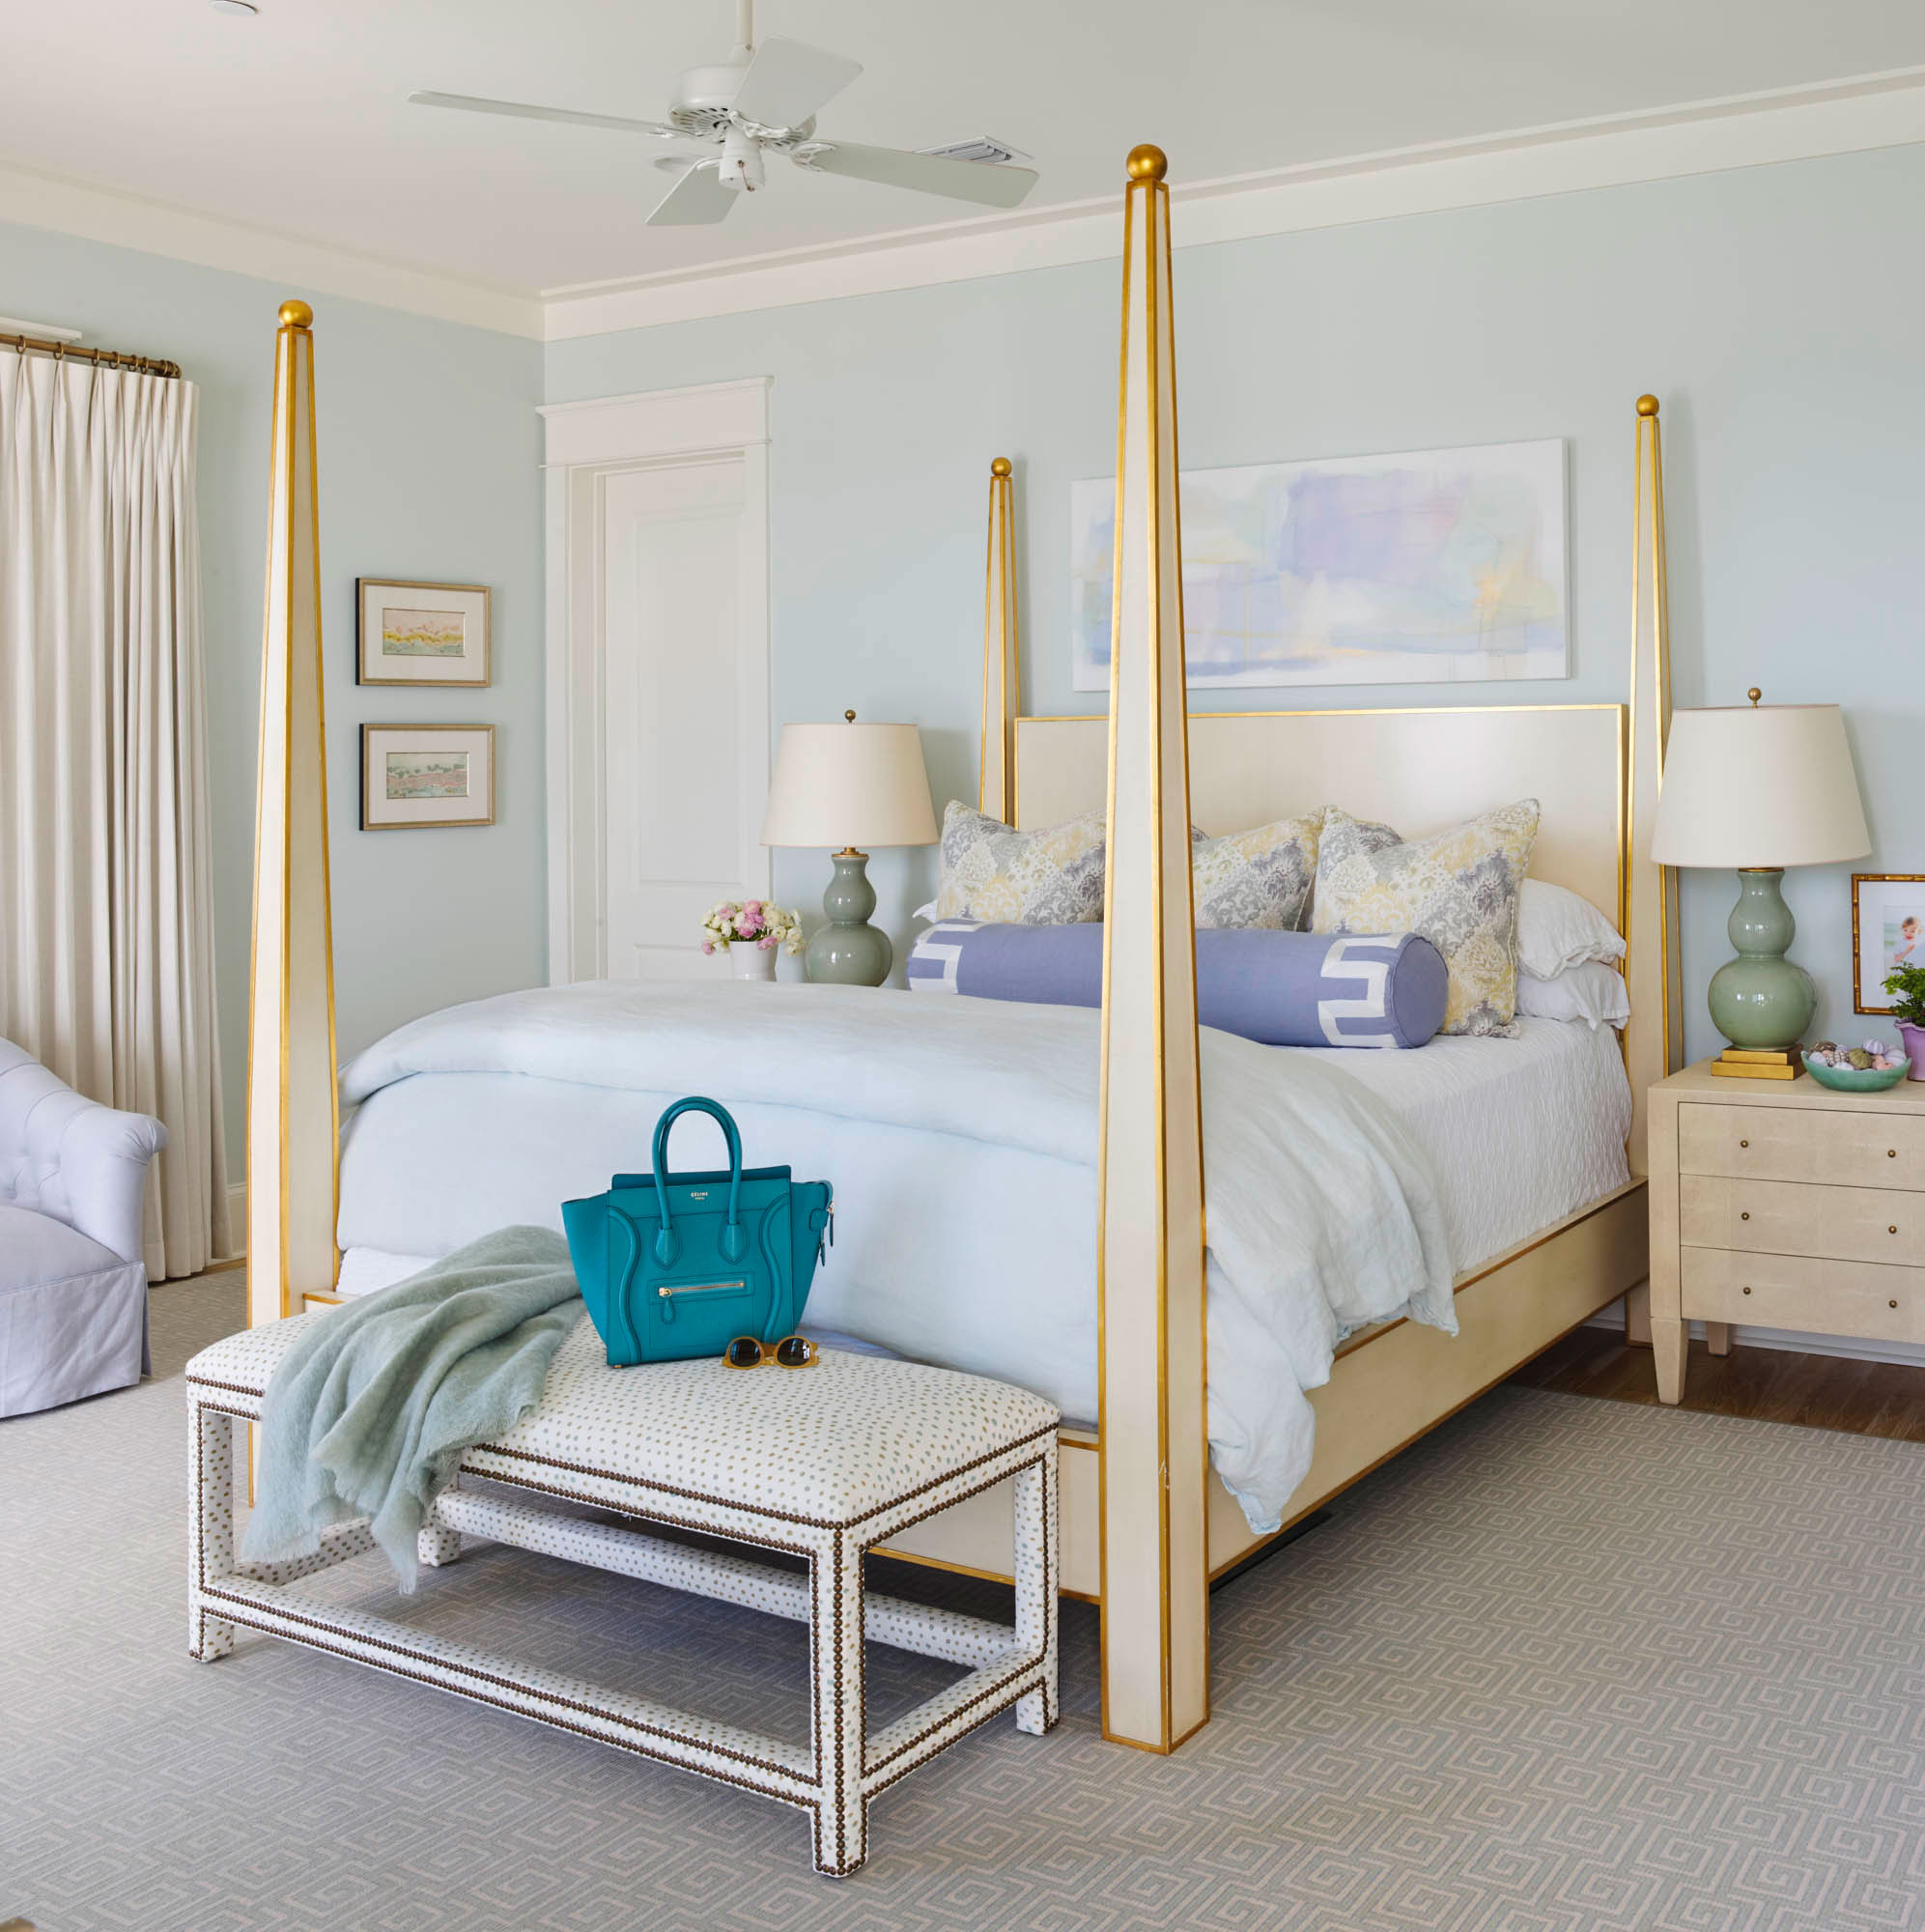 "Get the Blues: Window Pane by Sherwin-Williams                                       All the color inspiration homeowner Elizabeth Mazyck and designer Erika Powell needed for the walls of this dreamy master bedroom came from the home's quiet Inlet Beach, Florida, locale. ""My favorite time of day here is sunset, and so often, it appears in sea glass colors – lavender, sea foam, periwinkle,"" says Mazyck. She and Powell pulled those hues into the master bedroom for a palette that's as ethereal and peaceful as the stretch of sand the house overlooks."